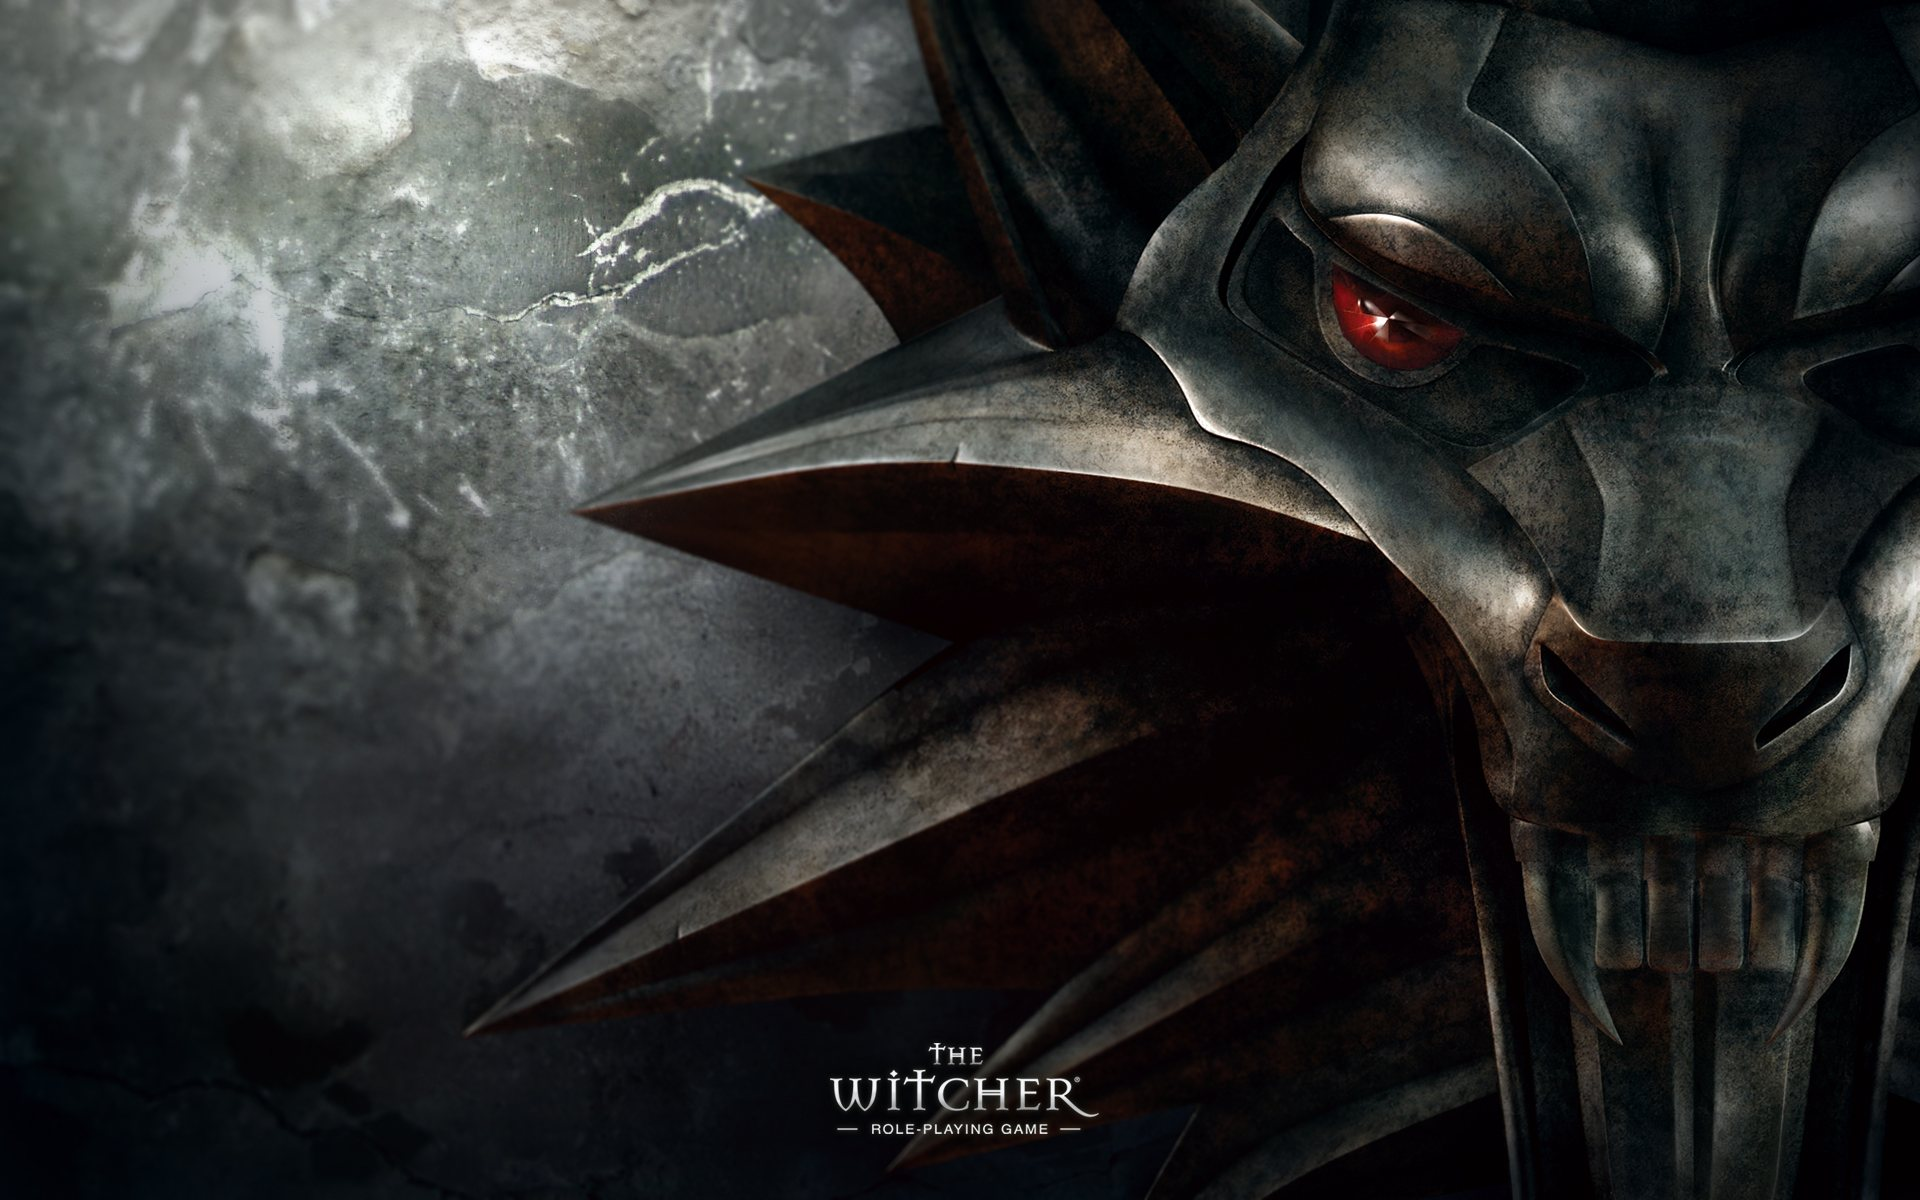 69 The Witcher Wallpaper On Wallpapersafari